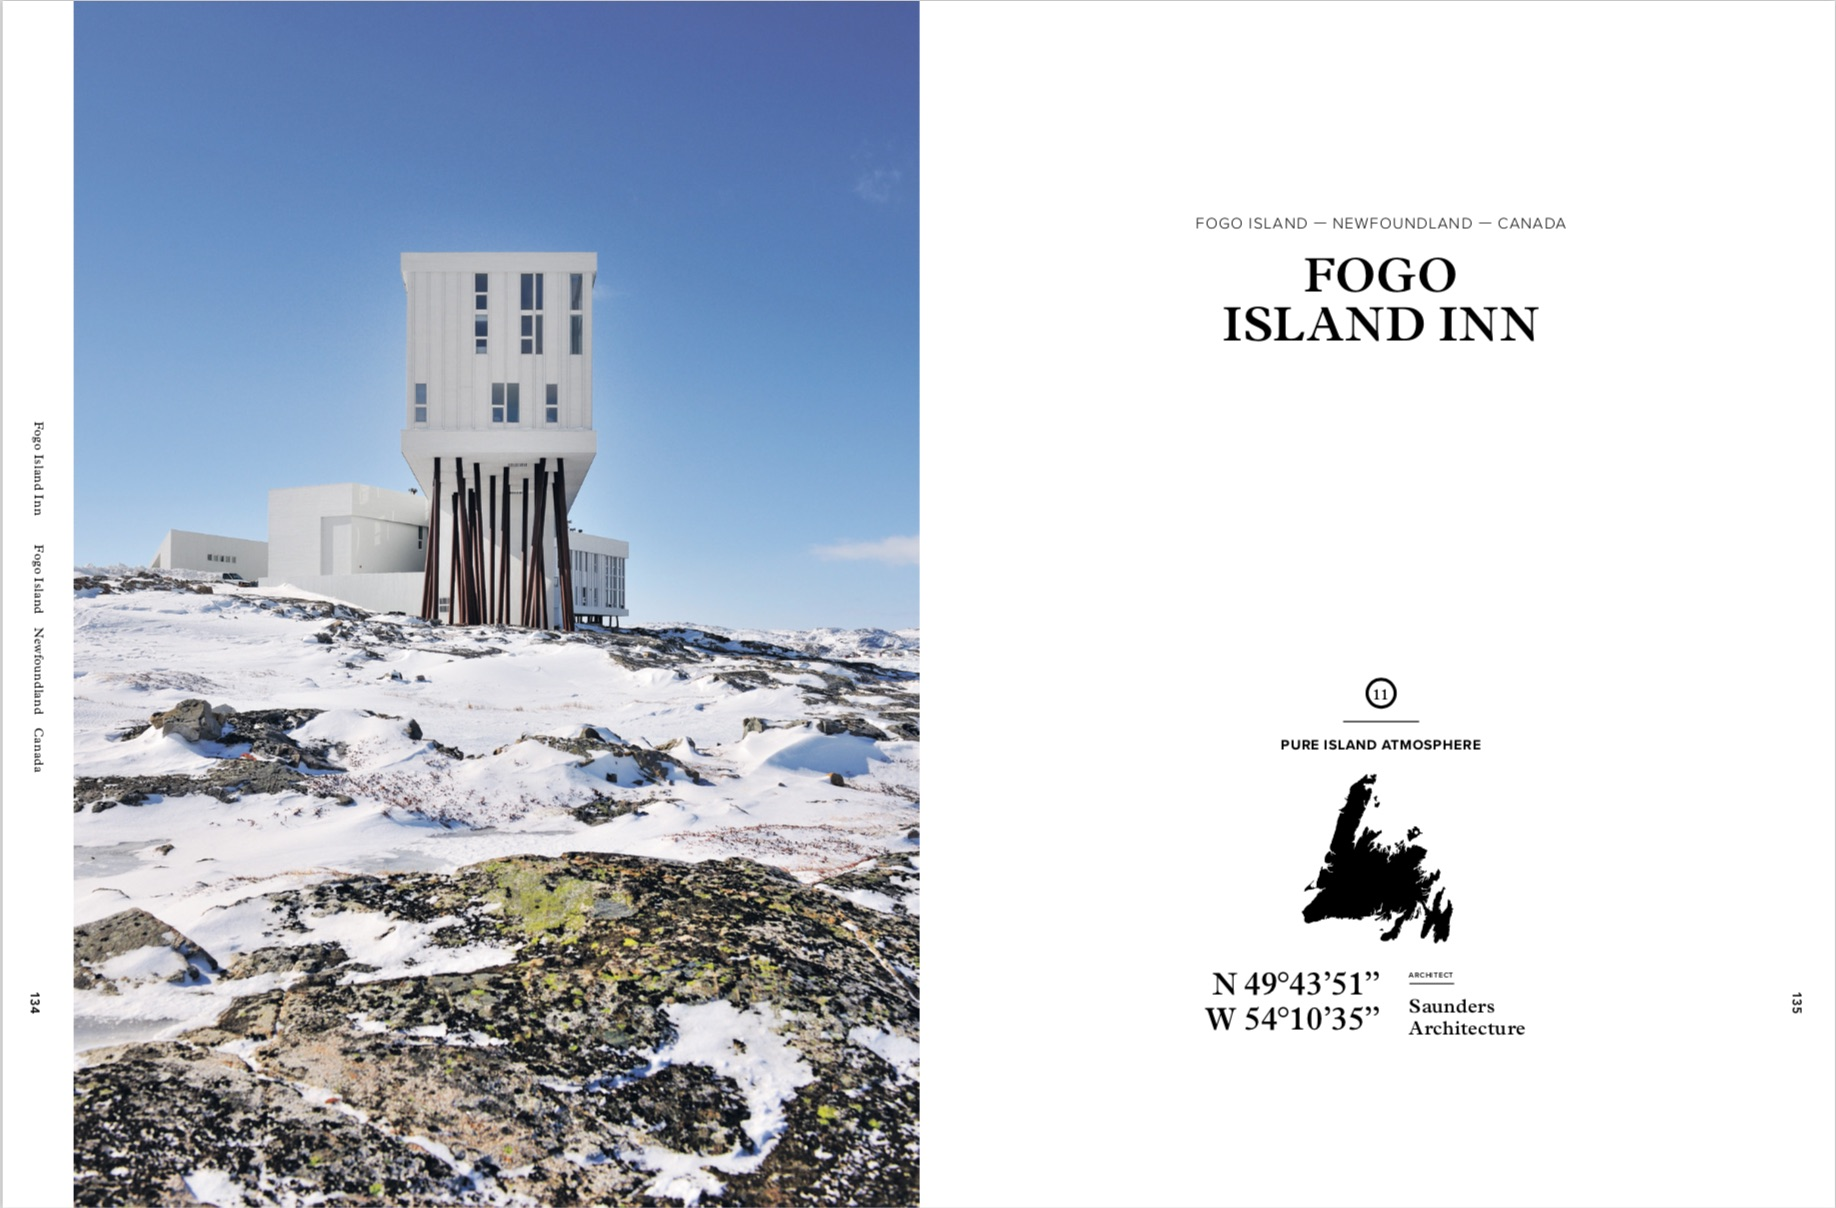 By Debbie Pappyn, David De Vleeschauwer from Remote Places to Stay: The Most Unique Hotels at the End of the World copyright Gestalten 2019